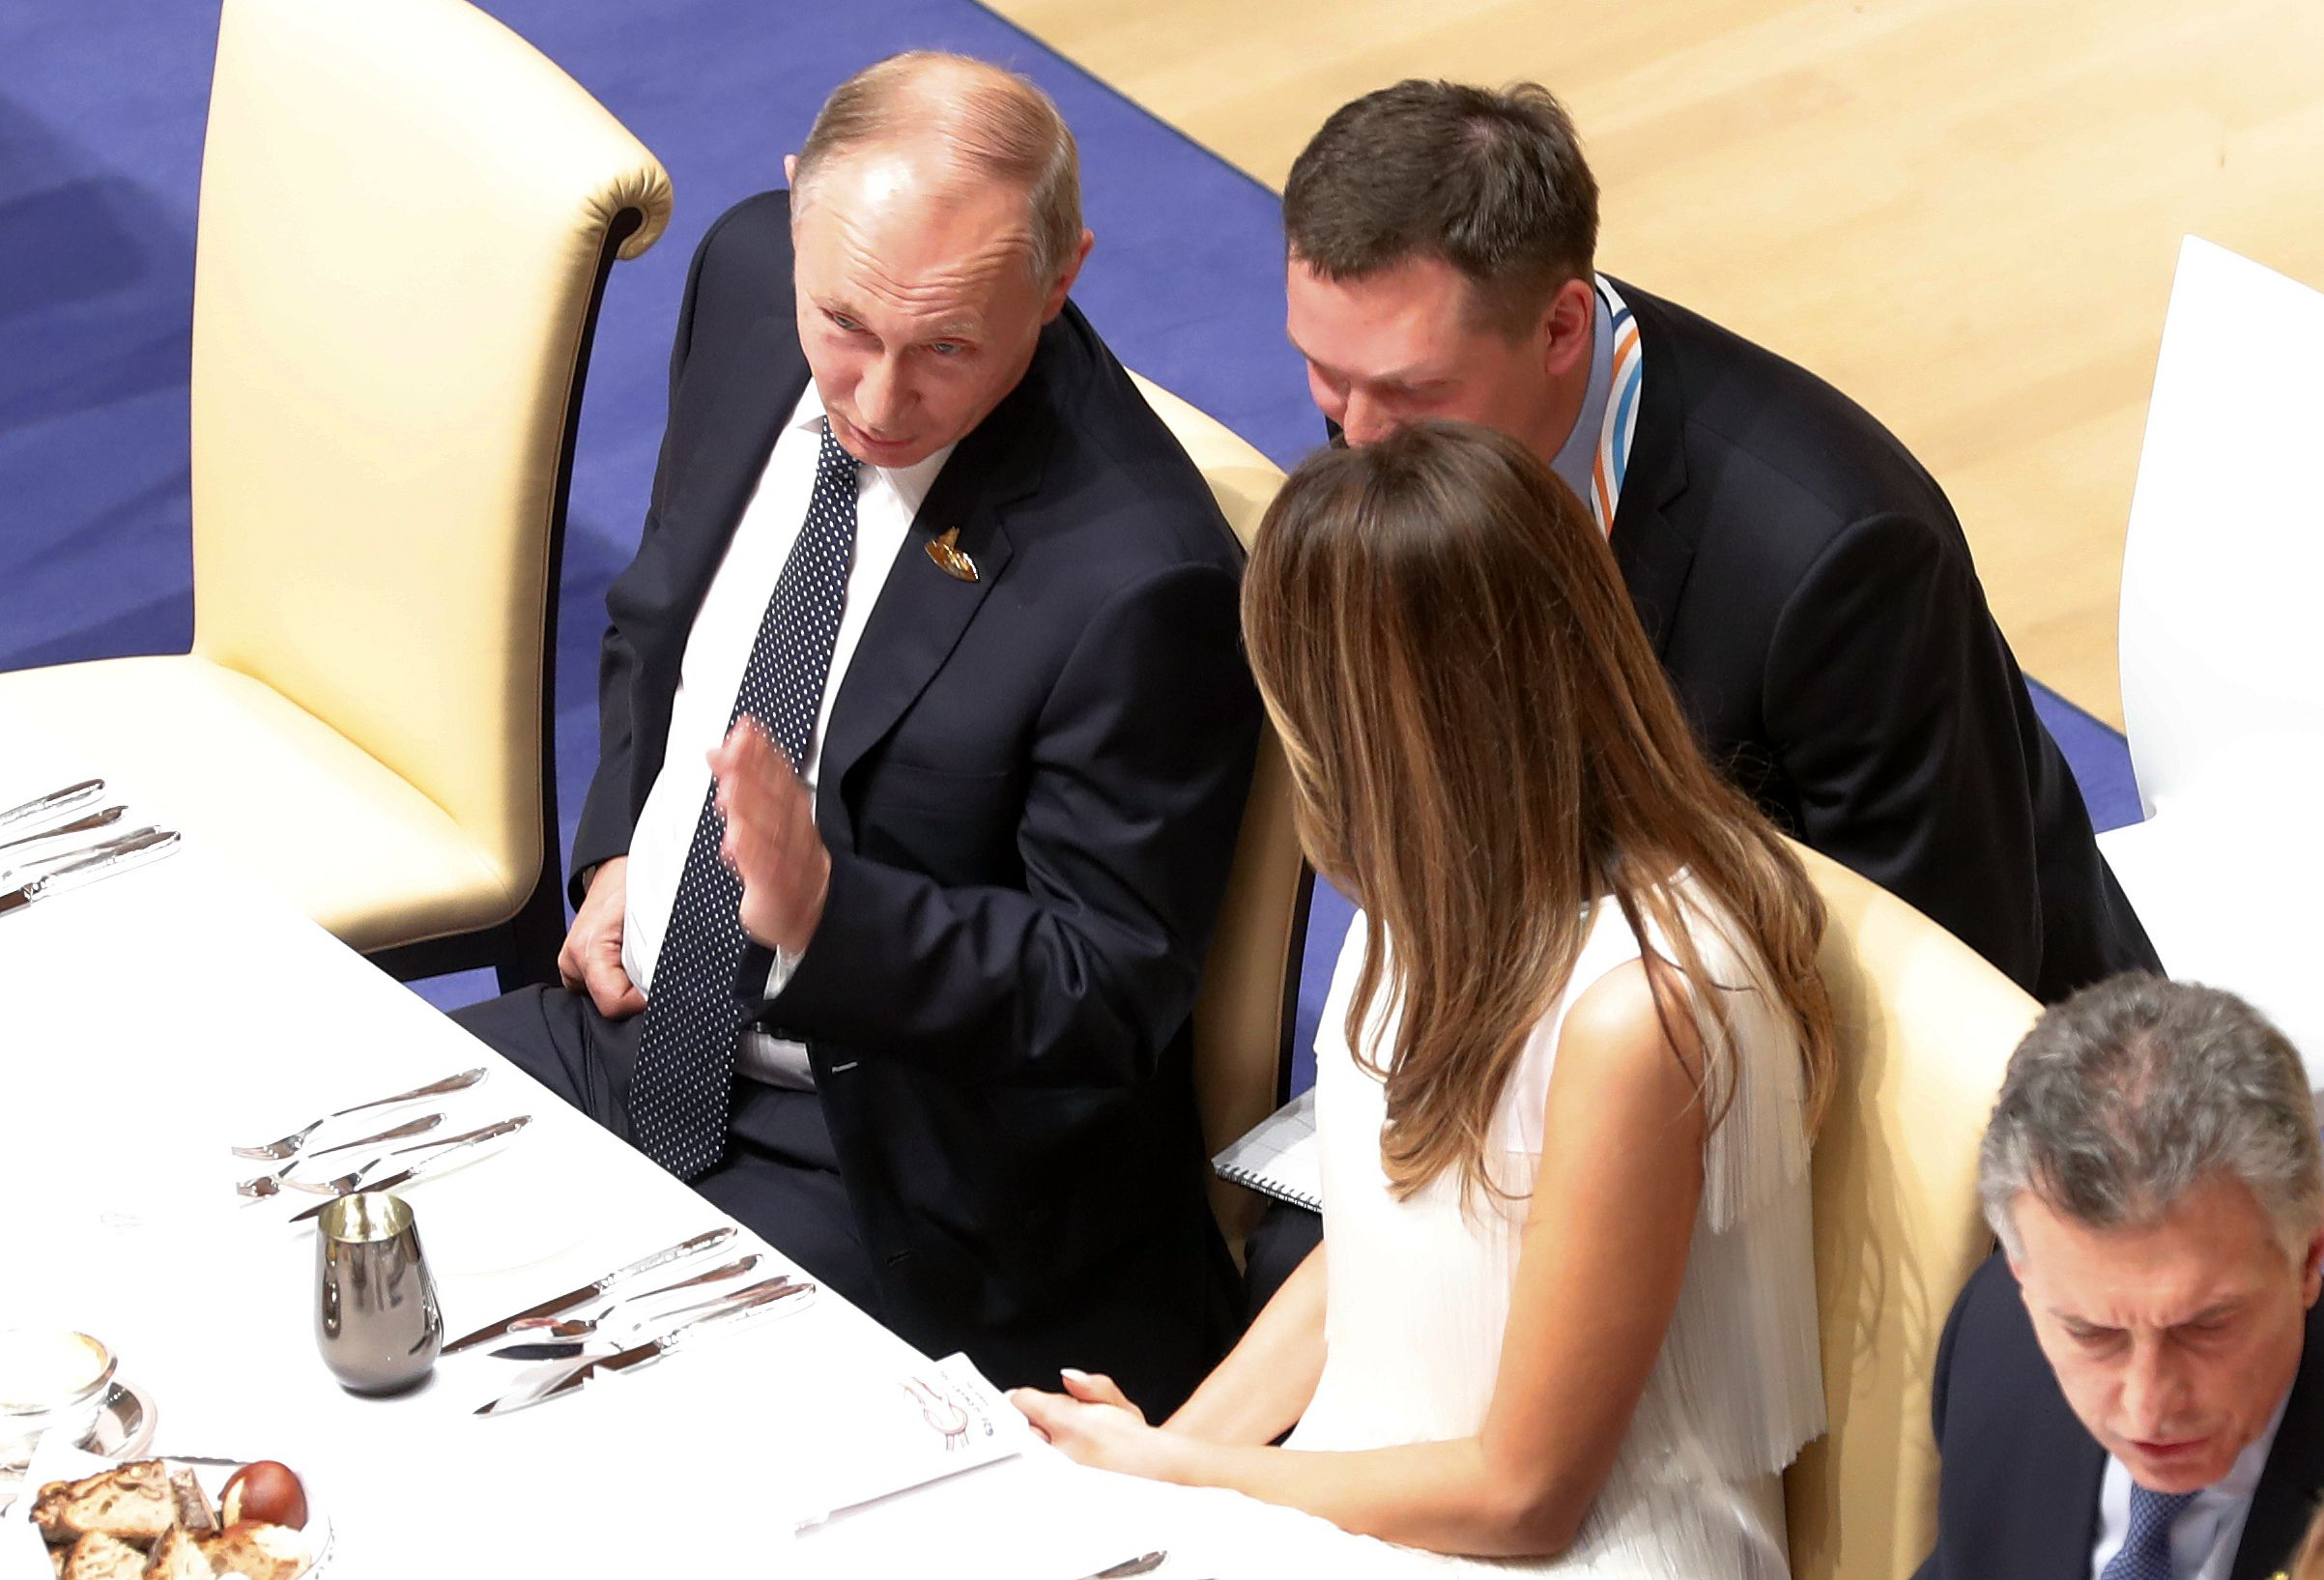 Putin and Melania at G20 summit banquet